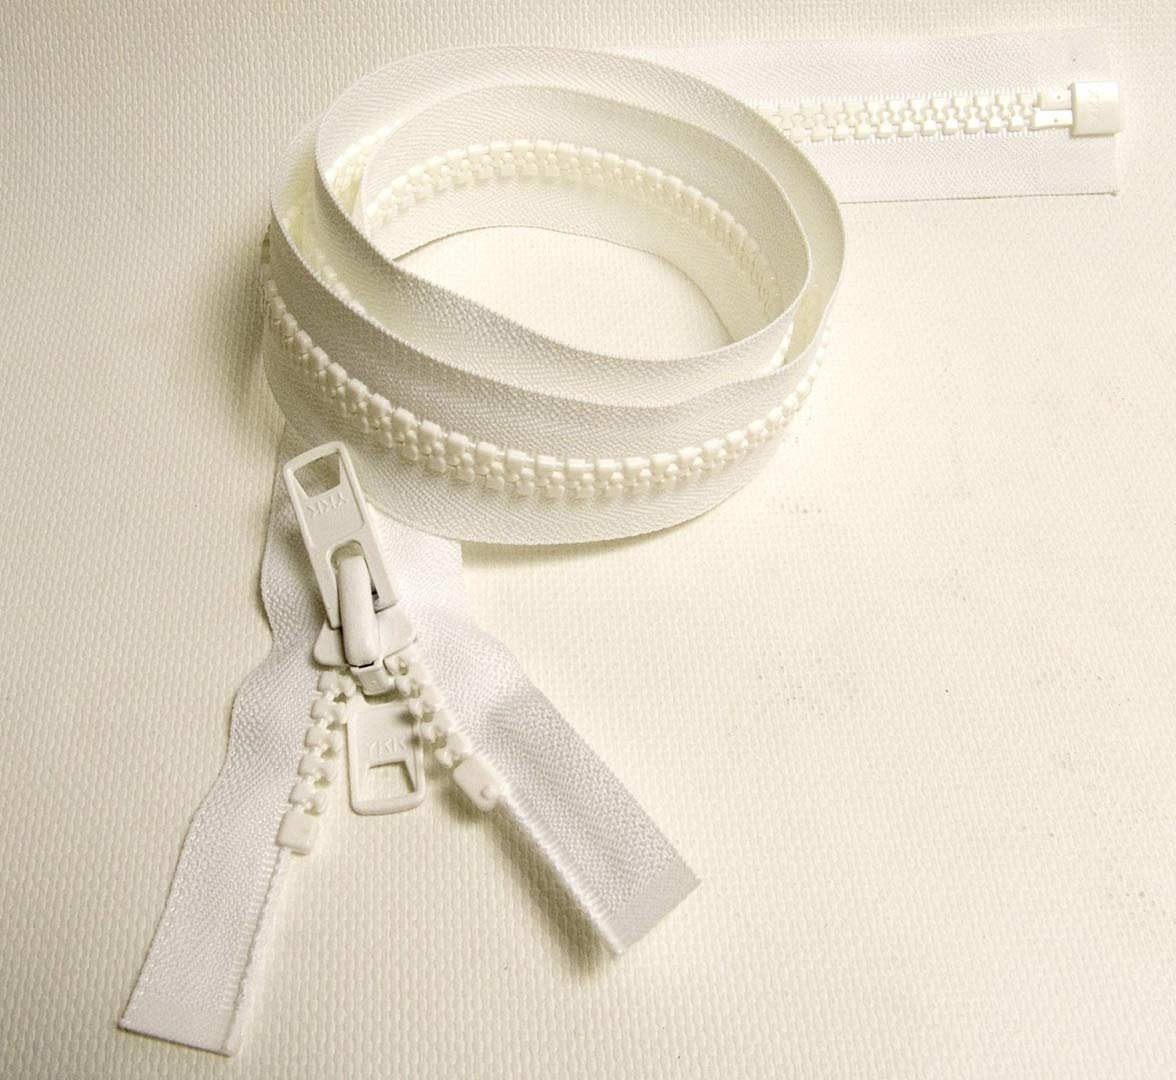 YKK #10 Boat Top Zipper, White 72'' Inch, Seperating Double Metal Tab Slider